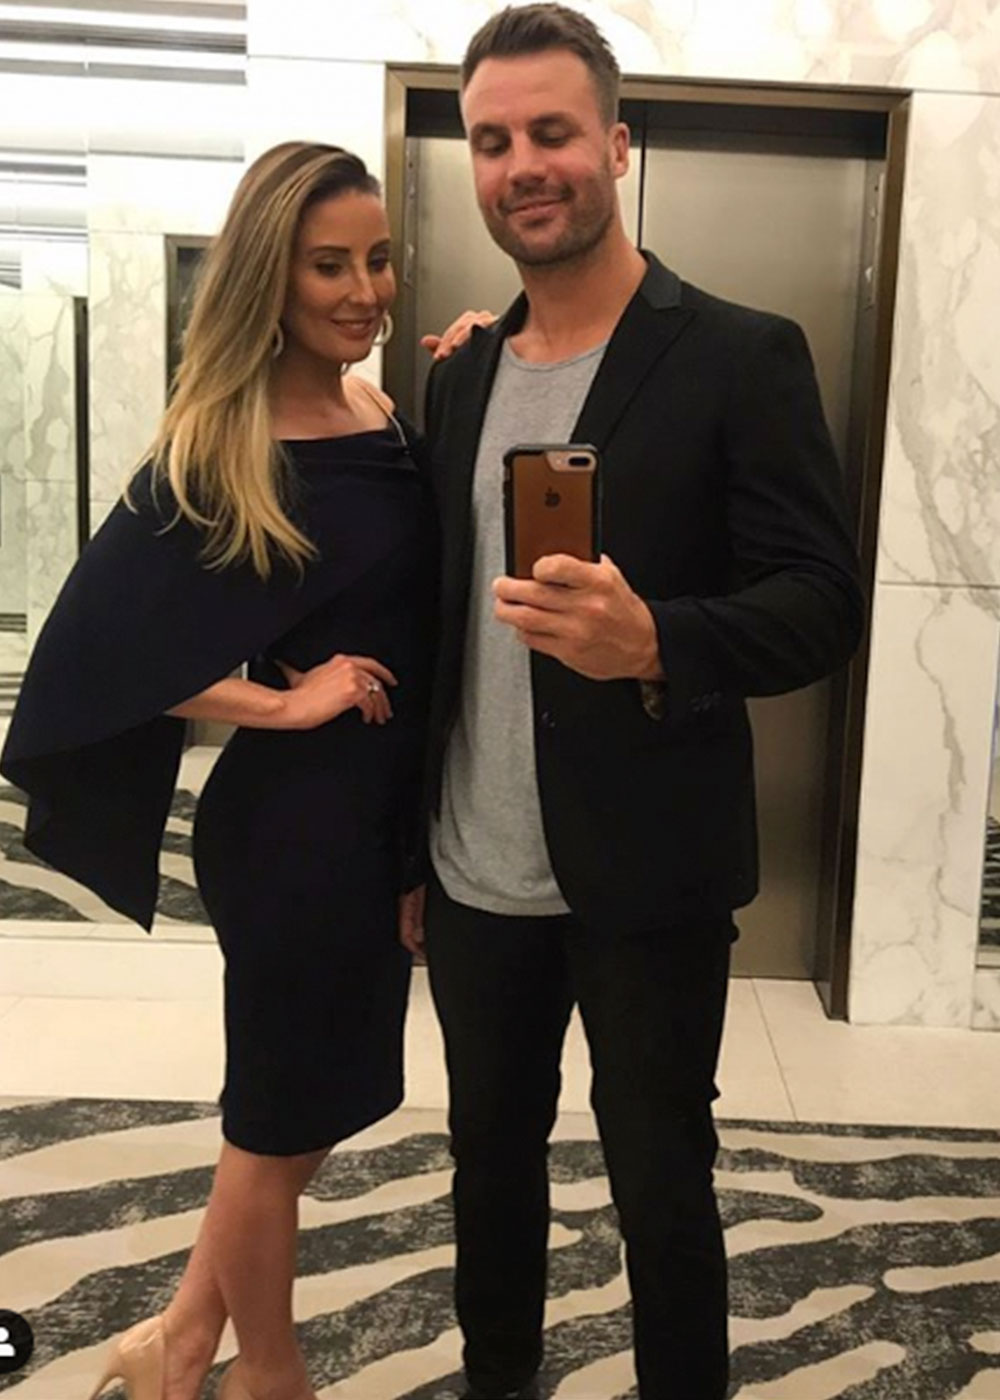 Beau Ryan Says The Amazing Race Gave His Marriage A Fresh